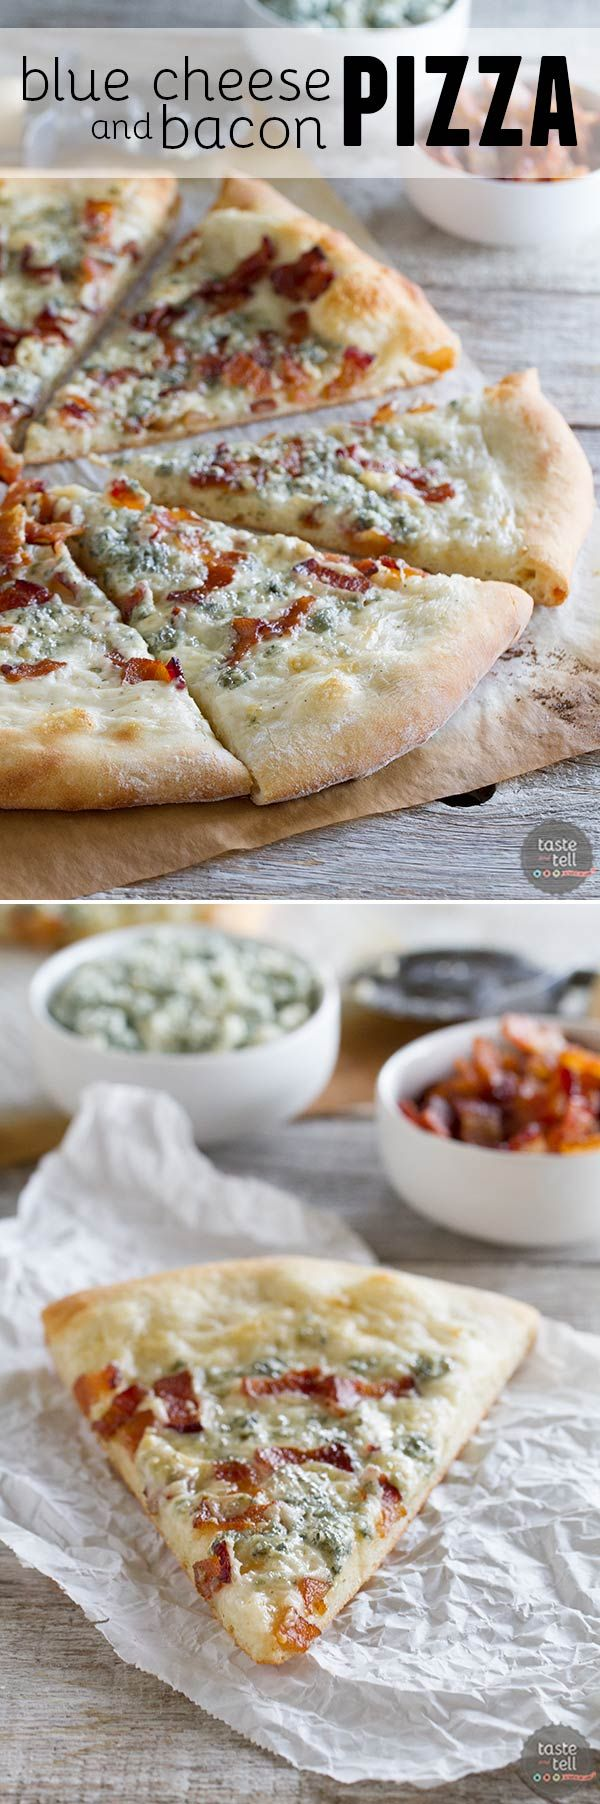 Change up your Friday night pizza with this Blue Cheese and Bacon Pizza.  Pizza crust is topped with an easy béchamel sauce, bacon and blue cheese for a gourmet pizza at home.